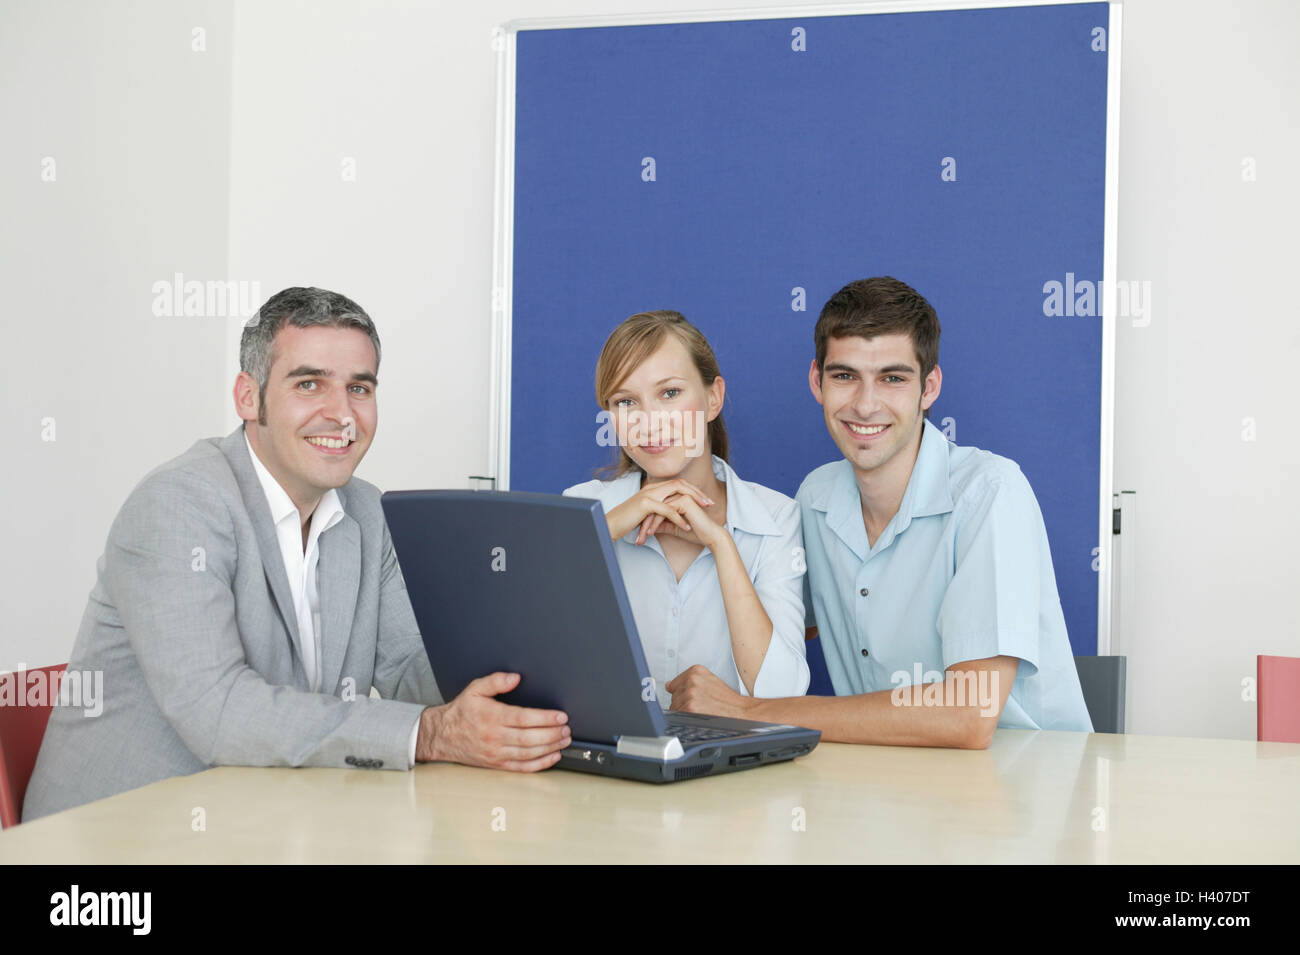 Businessman notebook computer couple young consultation smile present business conference room man manager 30-40 - Stock Image